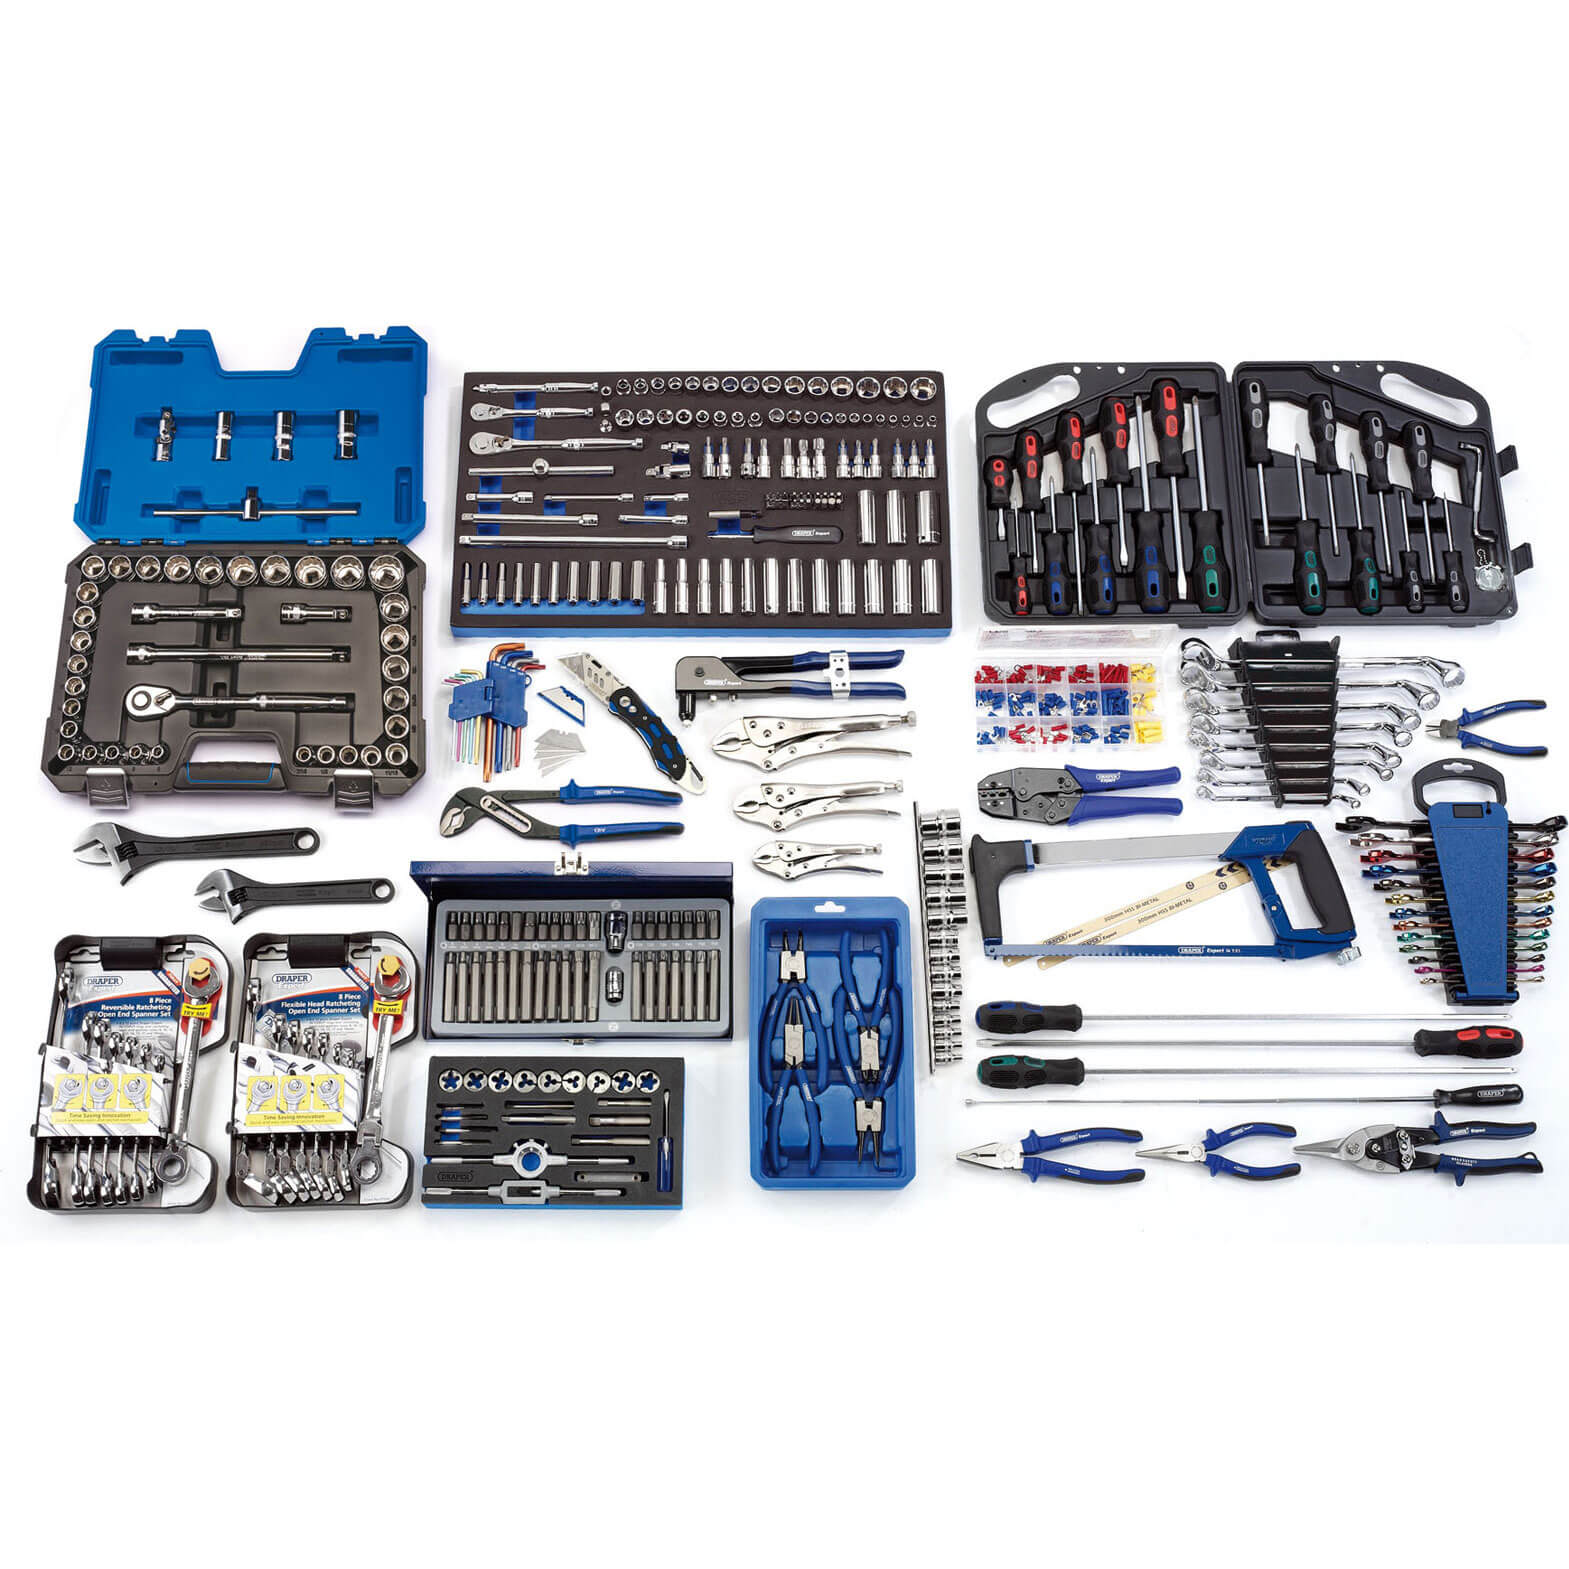 Image of Draper Workshop Deluxe Tool Kit